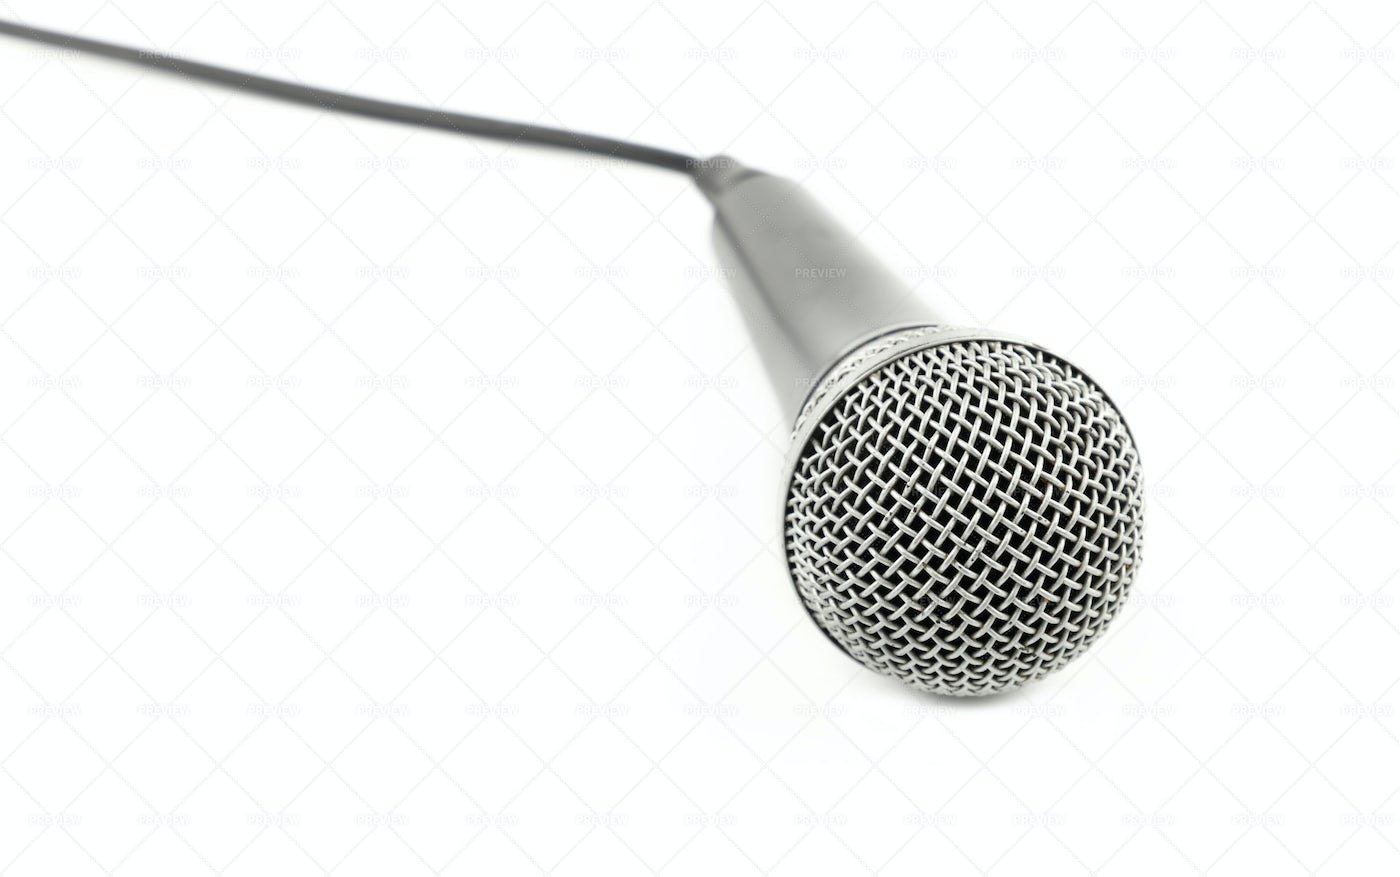 Microphone With Cable: Stock Photos